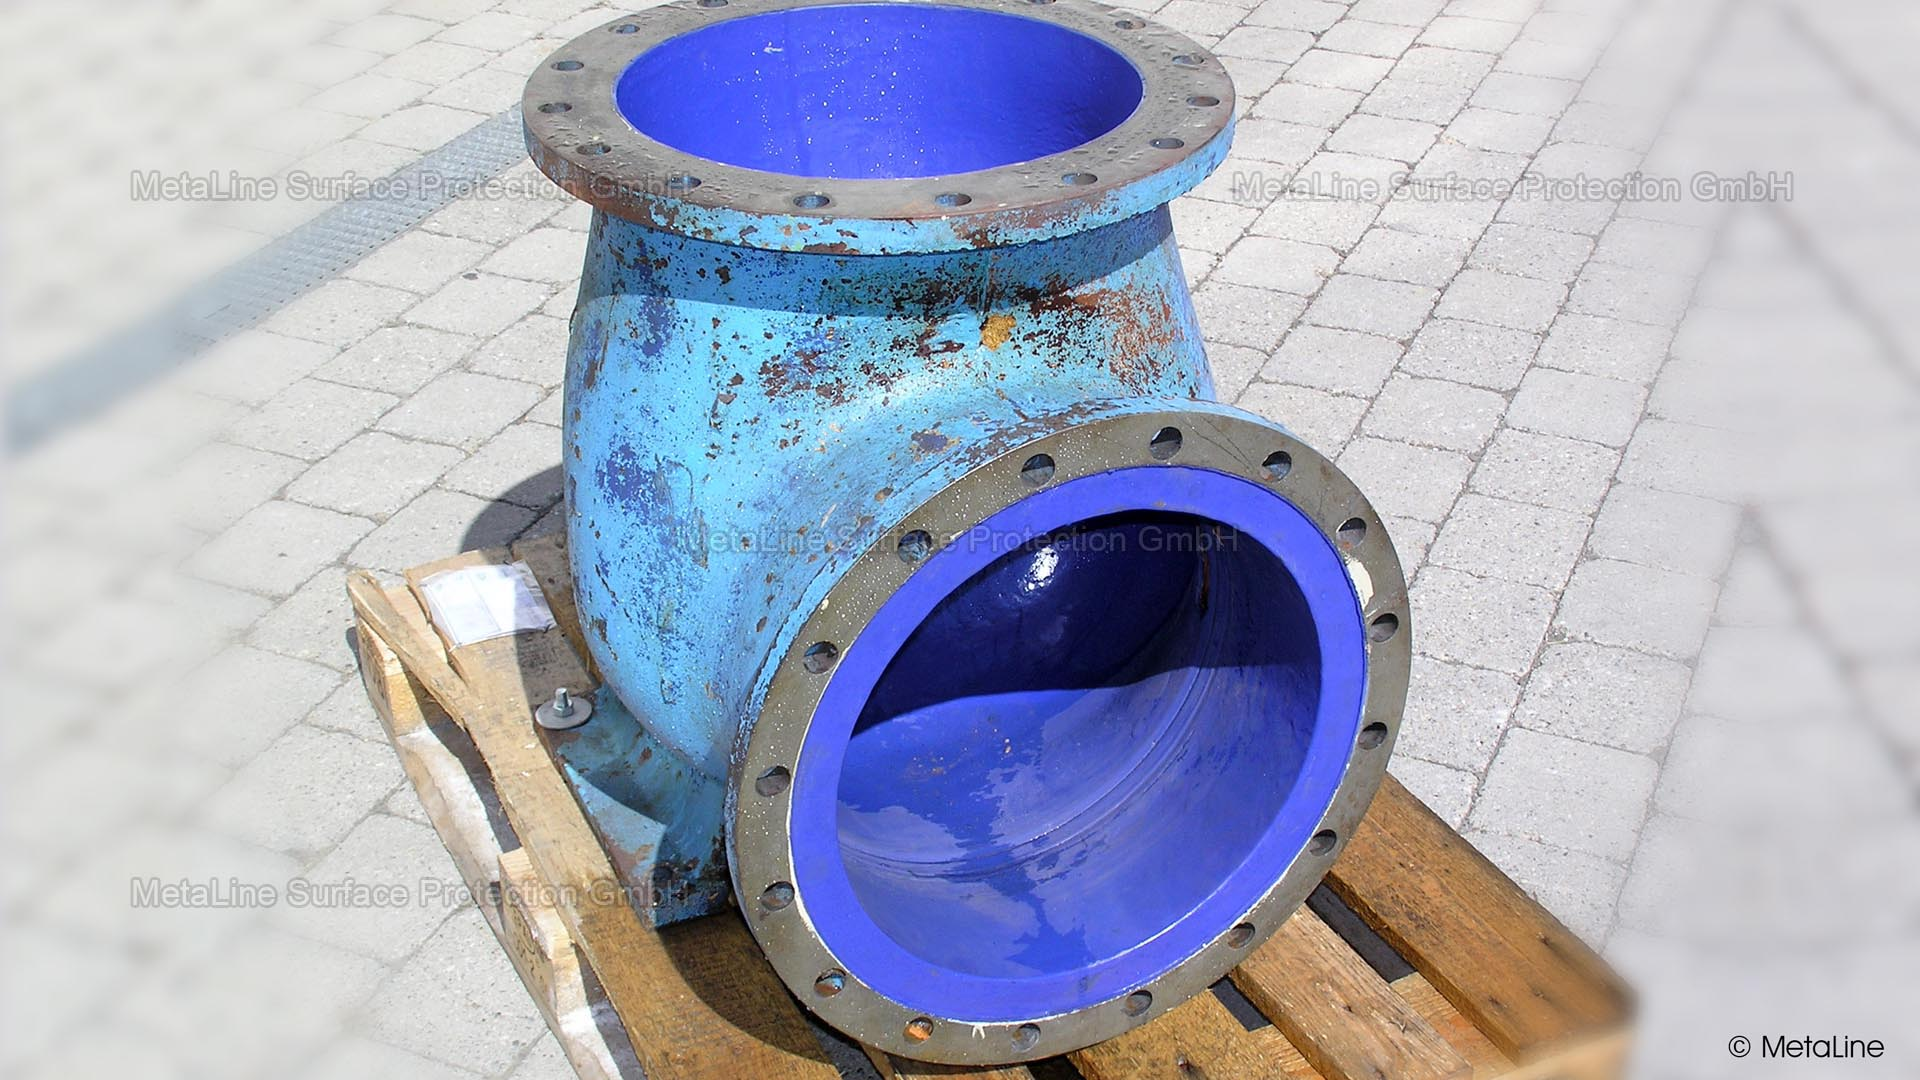 <!-- START: ConditionalContent --><!-- END: ConditionalContent -->   <!-- START: ConditionalContent --> mixer; agitator; dispenser; wear; corrosion; abrasion; rubber coating; repair; wear-resistant; coating; shaft; blade mixer; chemical protection <!-- END: ConditionalContent -->   <!-- START: ConditionalContent --><!-- END: ConditionalContent -->   <!-- START: ConditionalContent --><!-- END: ConditionalContent -->